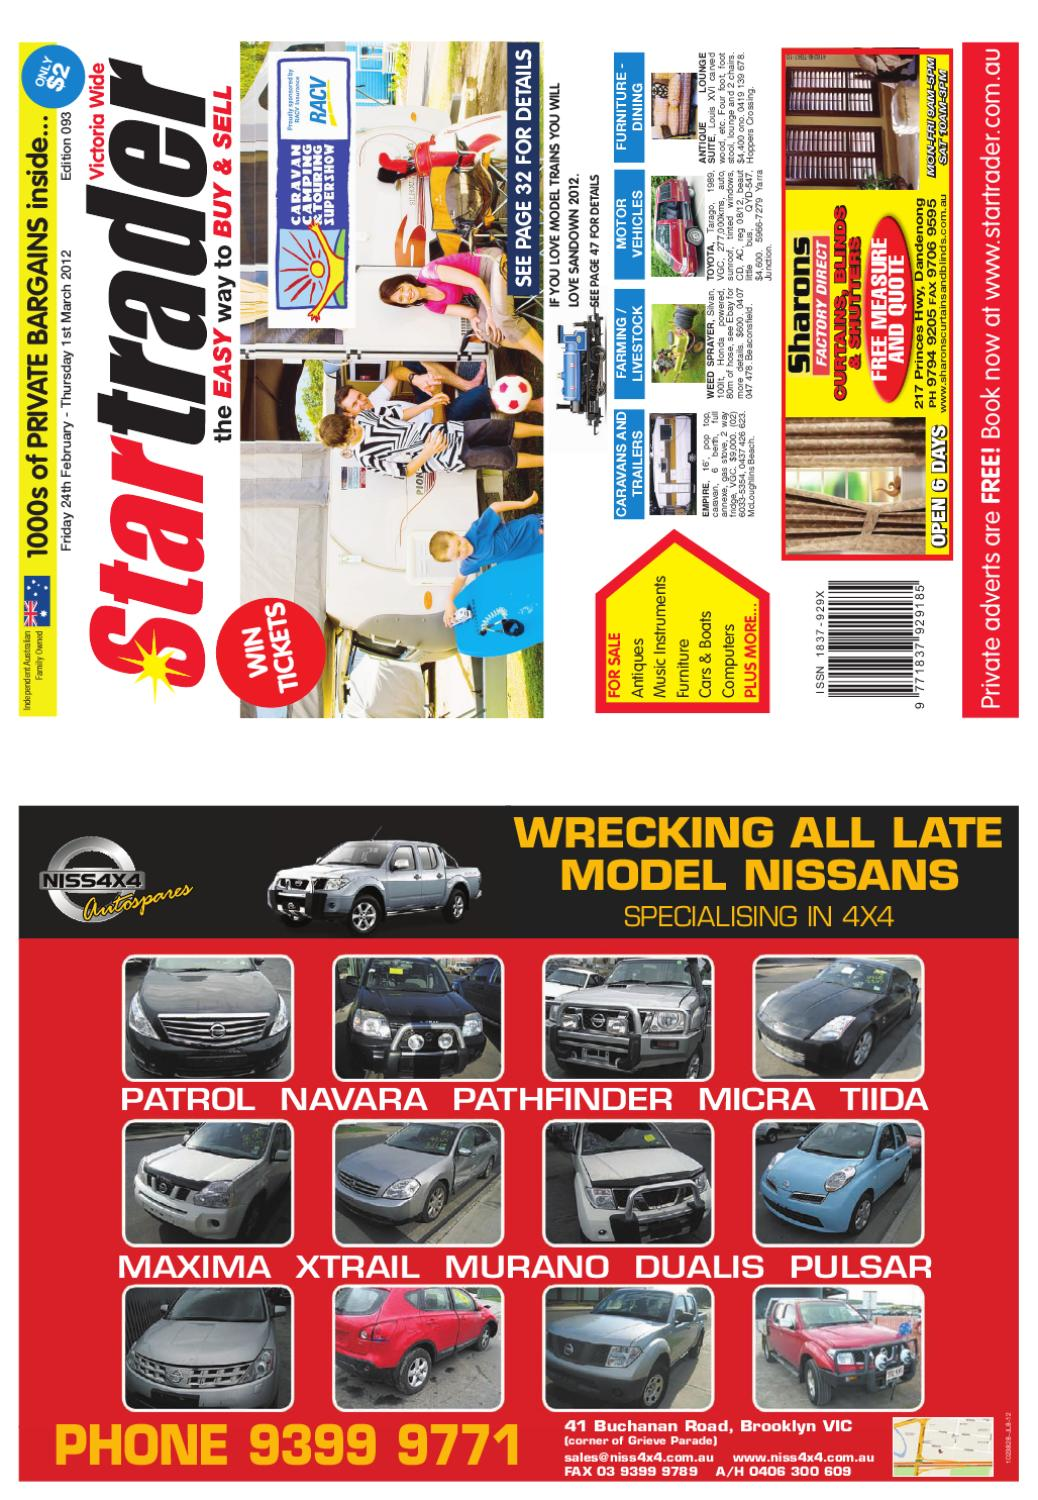 c1aefcddbcb Star Trader 24-02-2012pdf by Star News Group - issuu